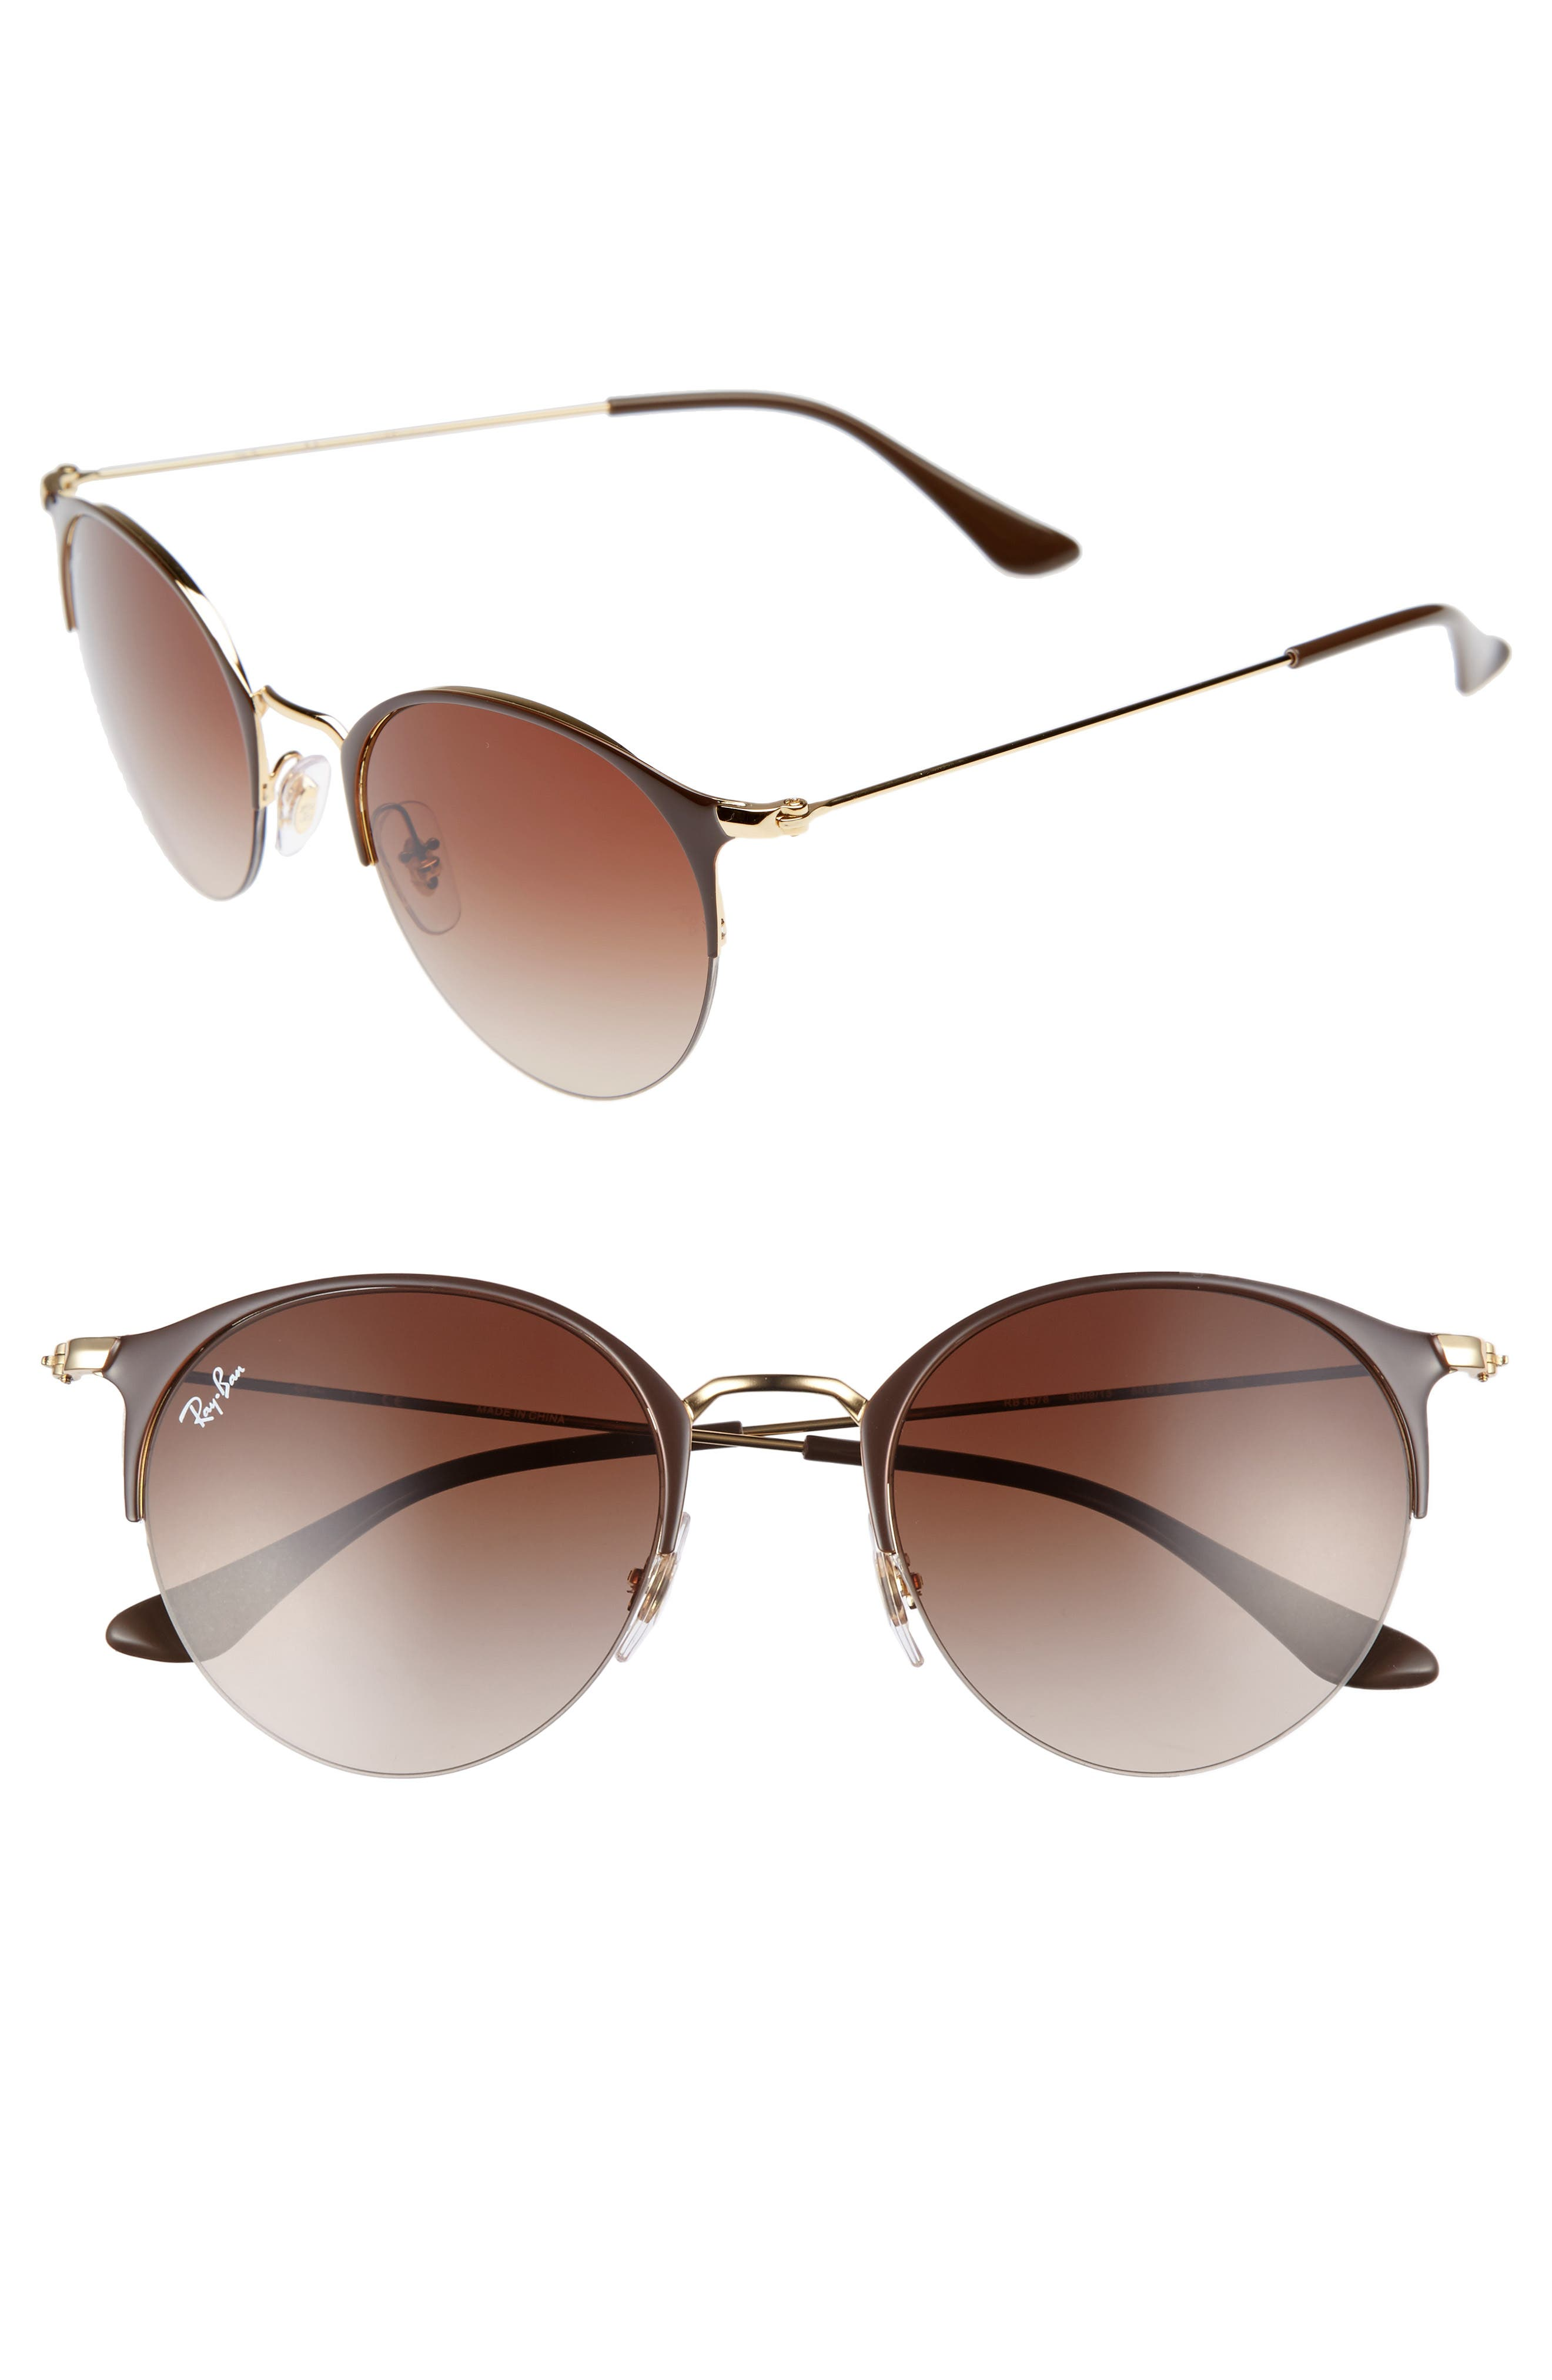 50mm Round Clubmaster Sunglasses,                         Main,                         color, 200